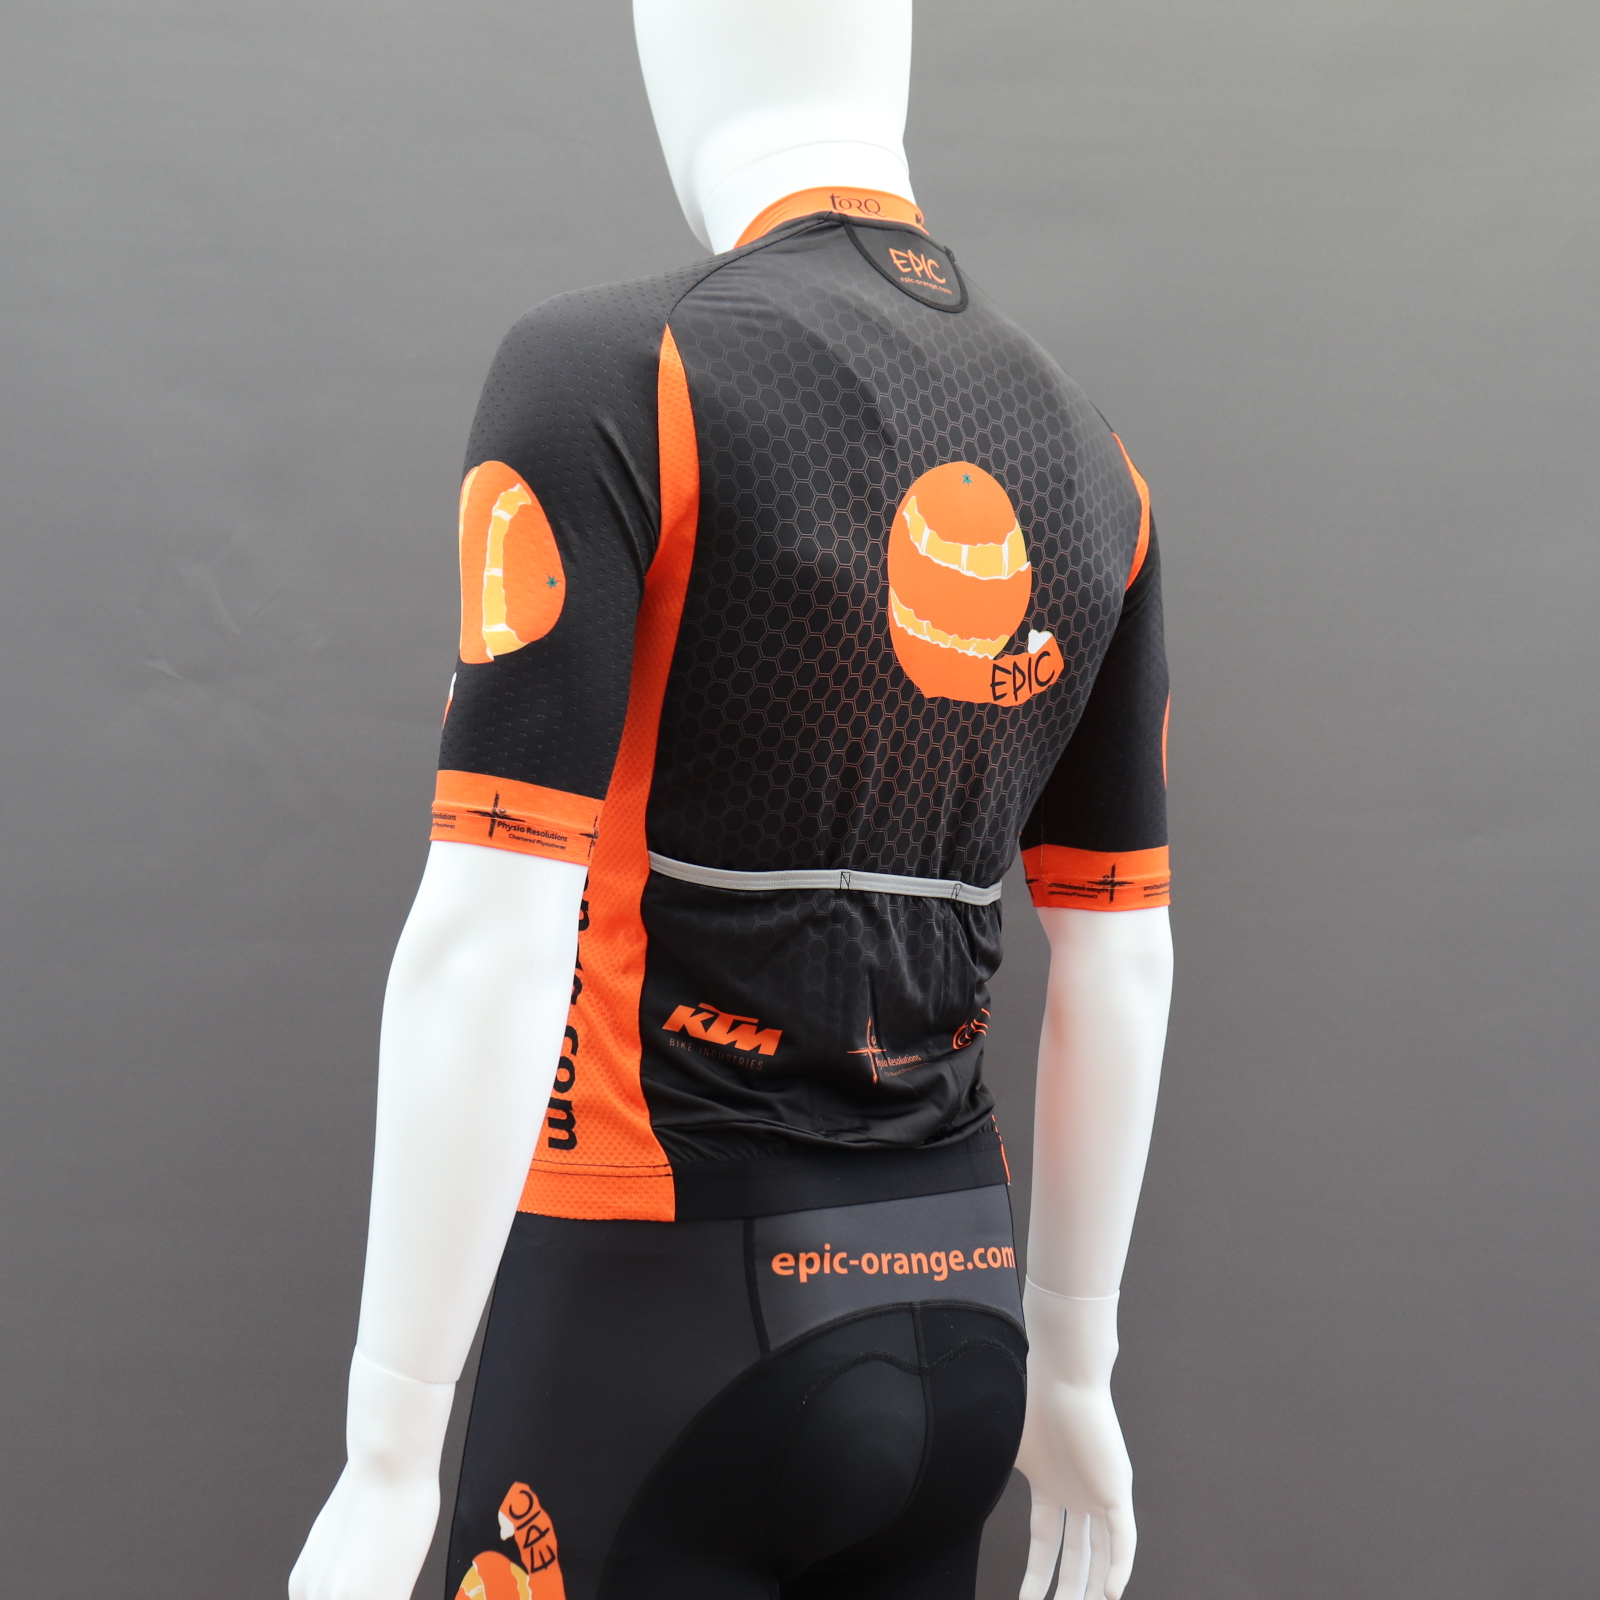 Custom Printed Euro Pro Cycle Jerseys